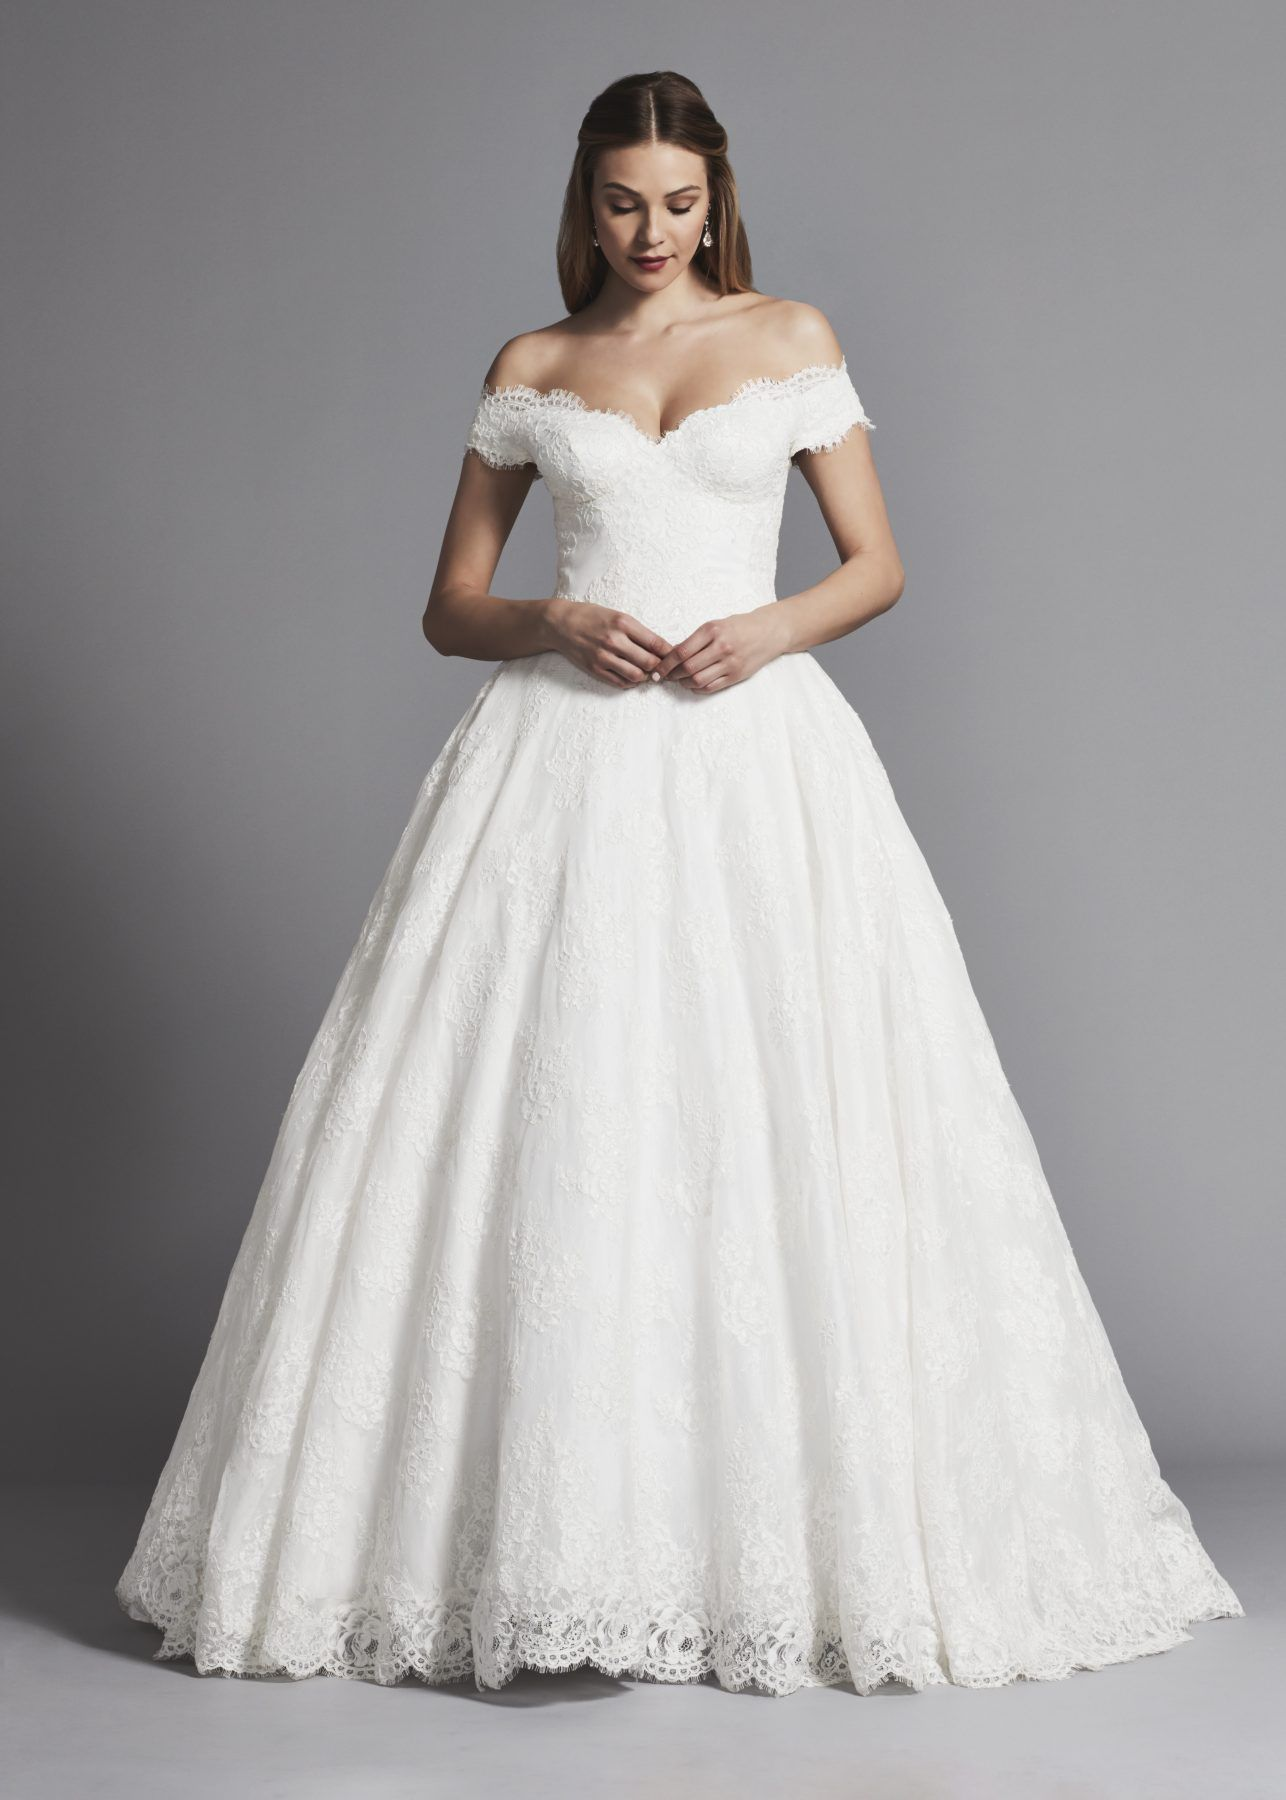 Off The Shoulder Lace Ball Gown Wedding Dress Kleinfeld Bridal Ball Gowns Wedding Wedding Dresses Lace Ballgown Wedding Dresses Lace